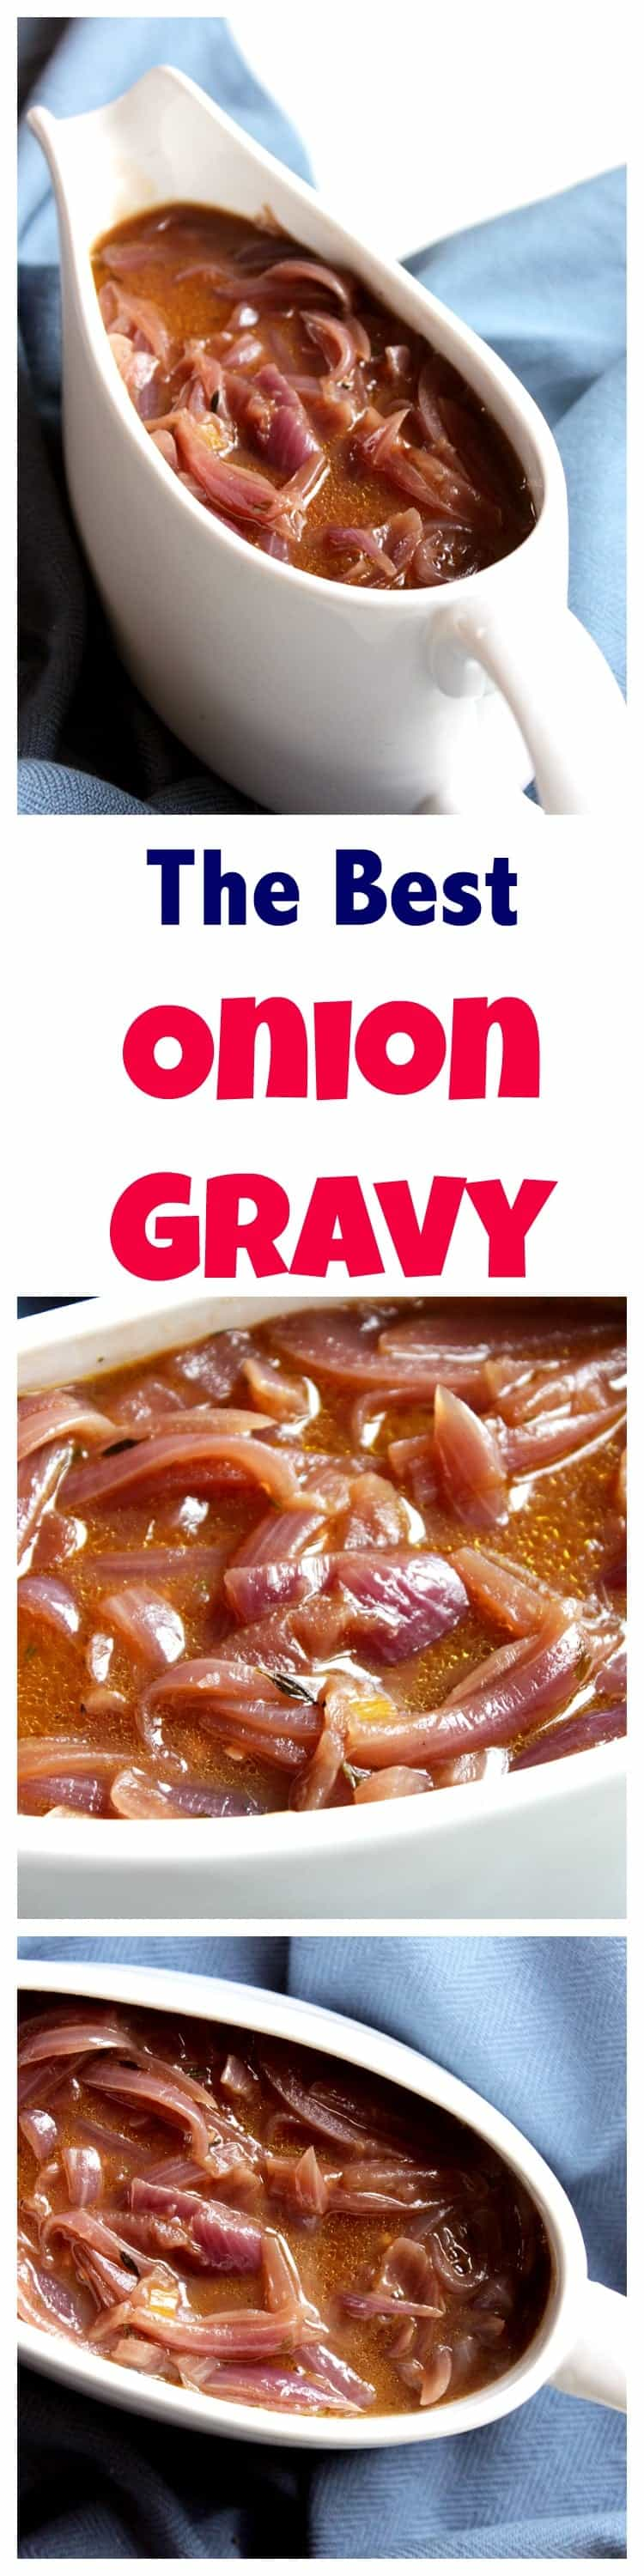 This onion gravy is a perfect accompaniment to bangers and mash, toad in the hole or a Sunday roast. Made from scratch and full of flavour. Vegetarian.